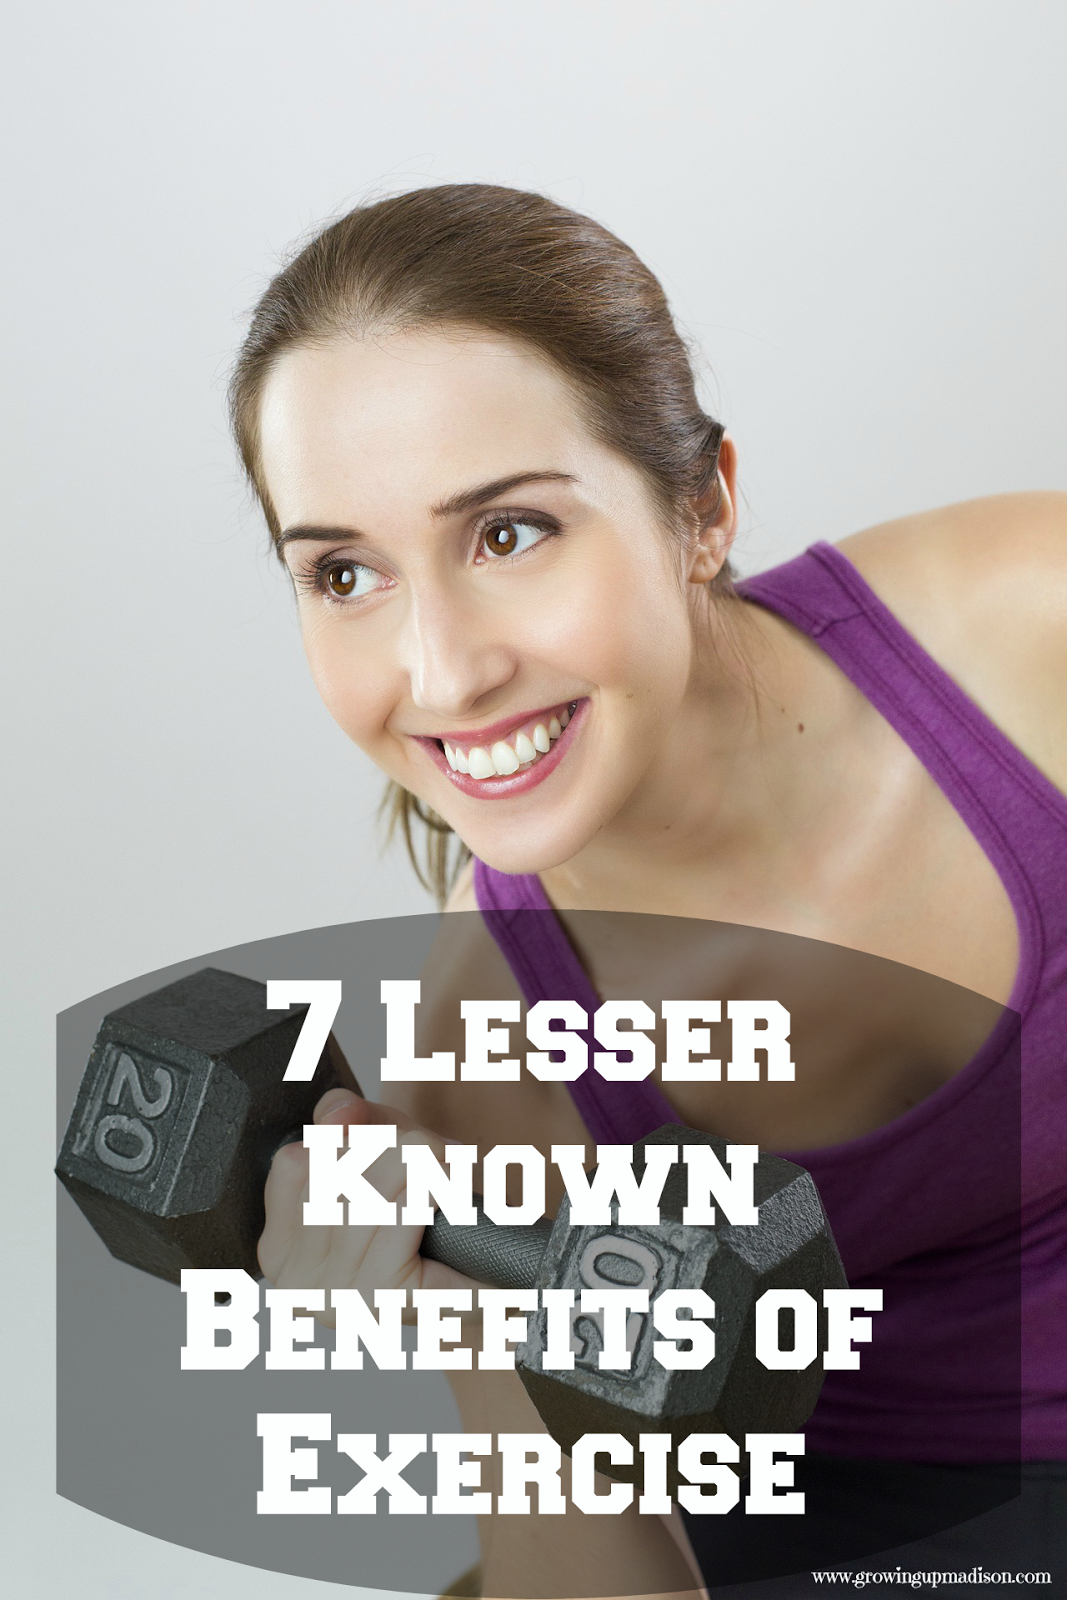 7 Lesser Known Benefits Of Exercise